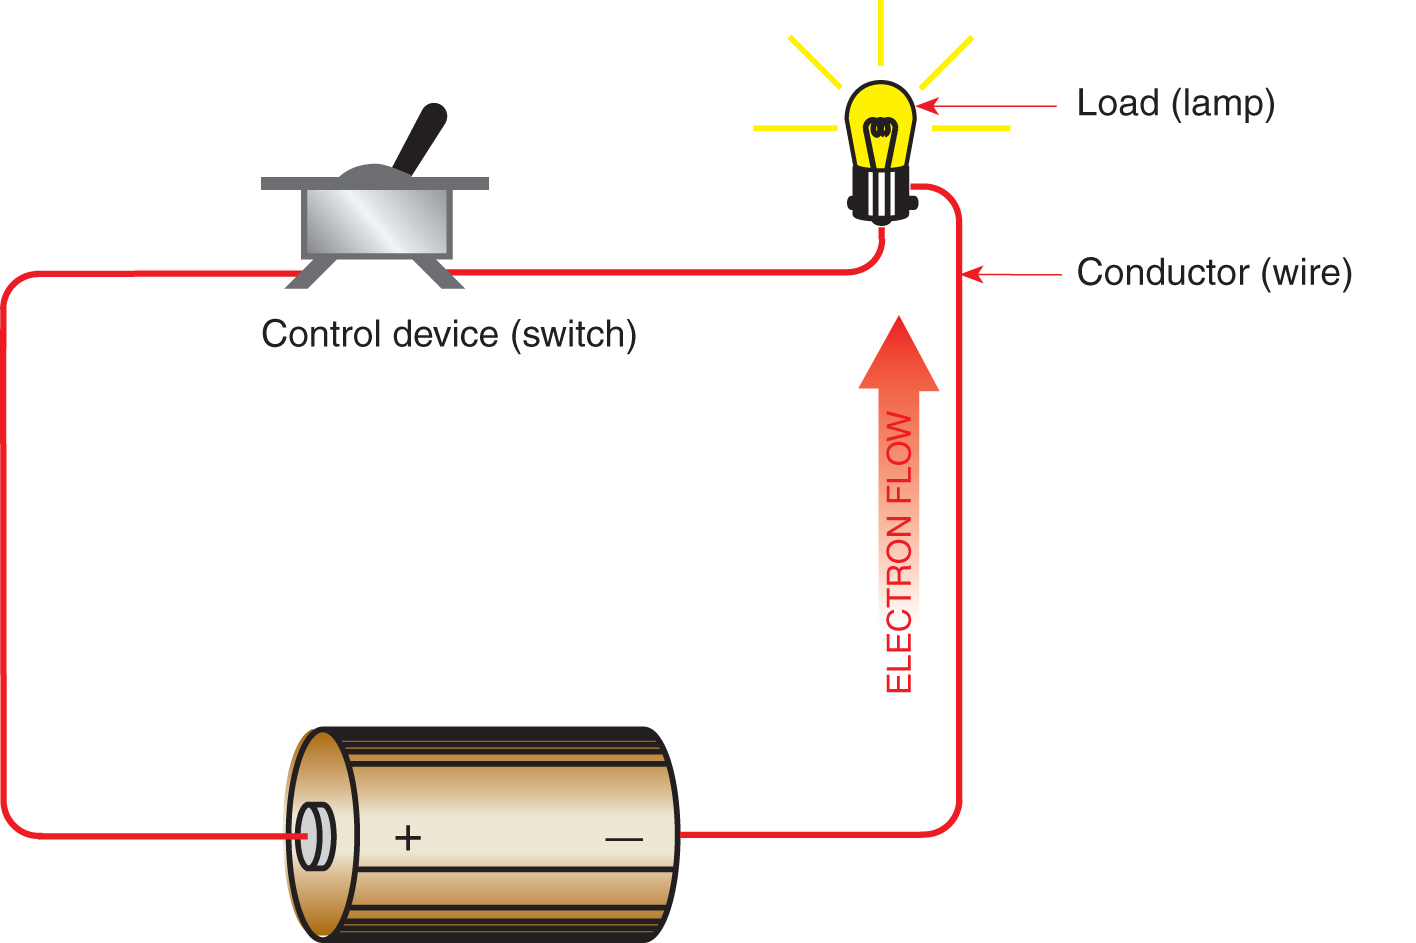 This is a complete electrical circuit. When the switch is closed, current flows from the positive terminal of the battery through the lamp, where there is enough opposition that the filament gets white hot. After all of the pressure from the battery is dissipated by the lamp, the current returns to the negative terminal of the battery.